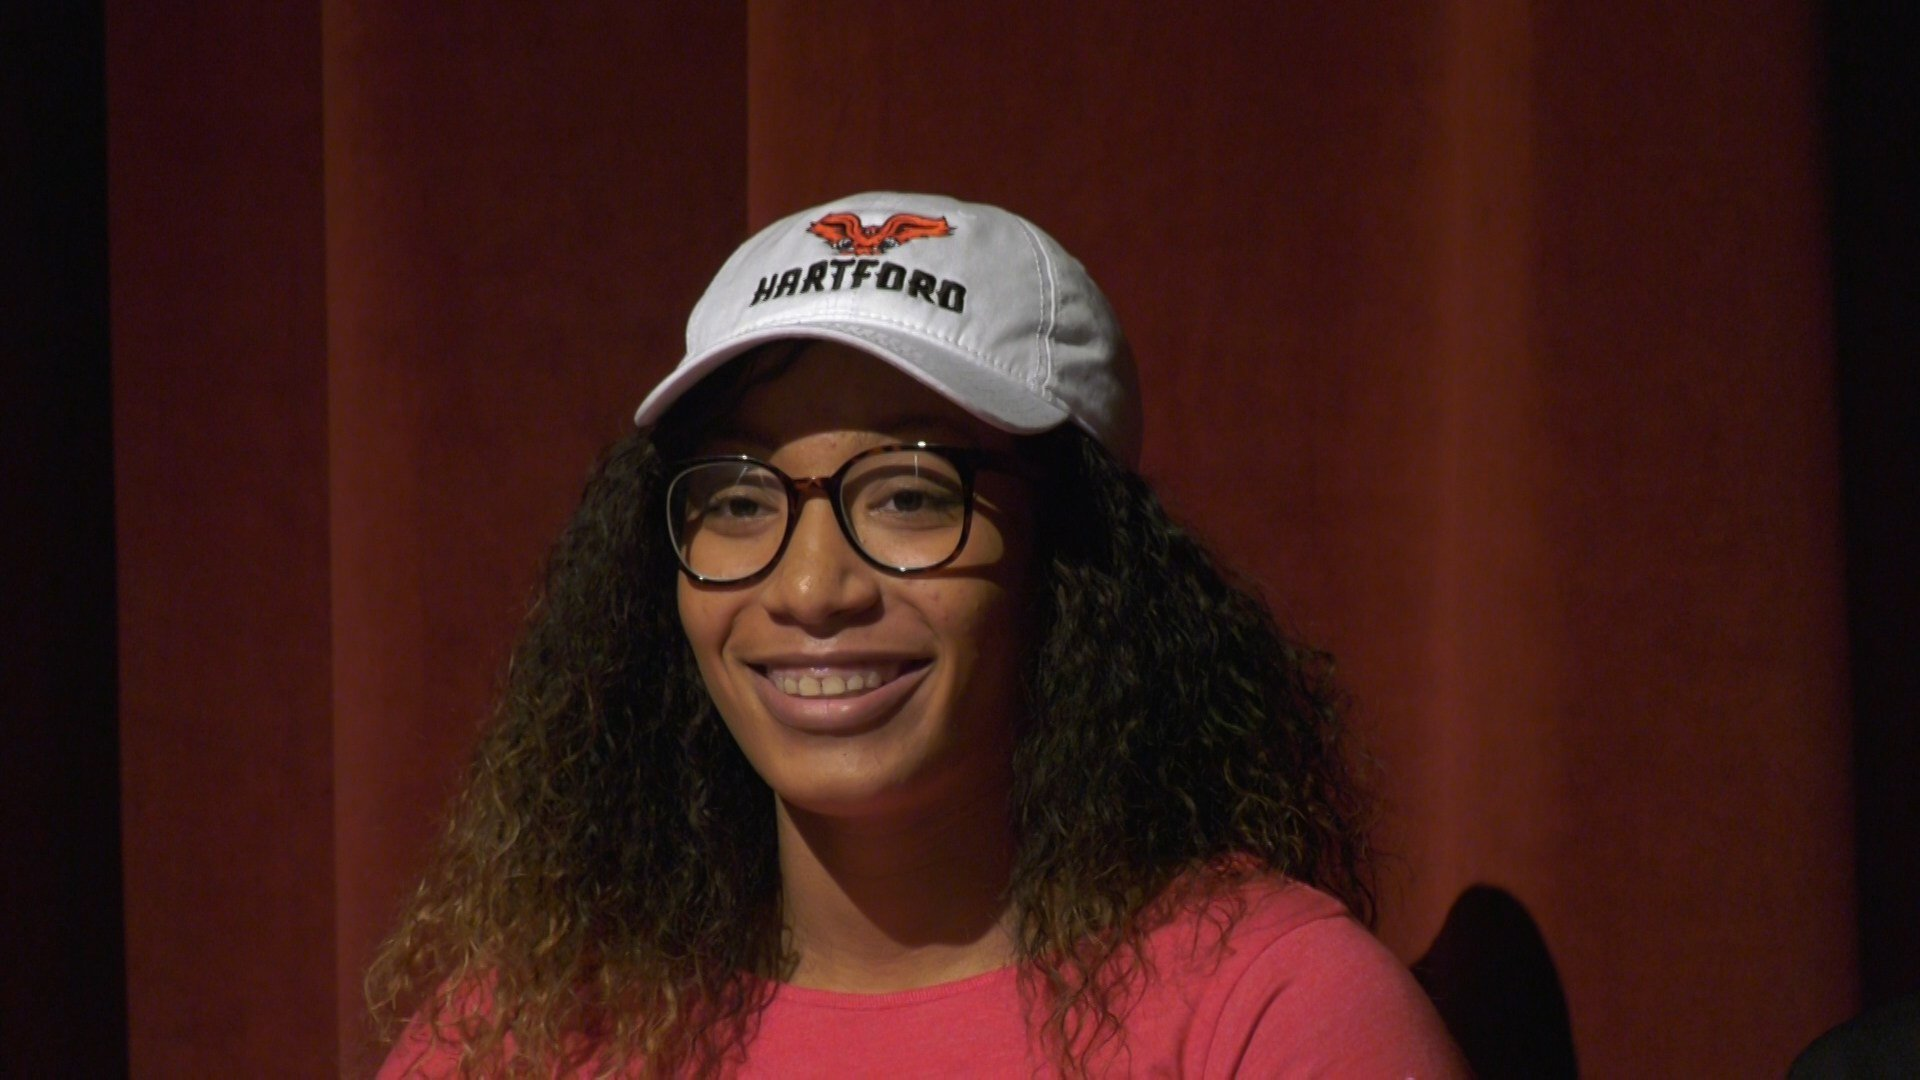 Sierra Smith signed to play basketball at the University of Hartford